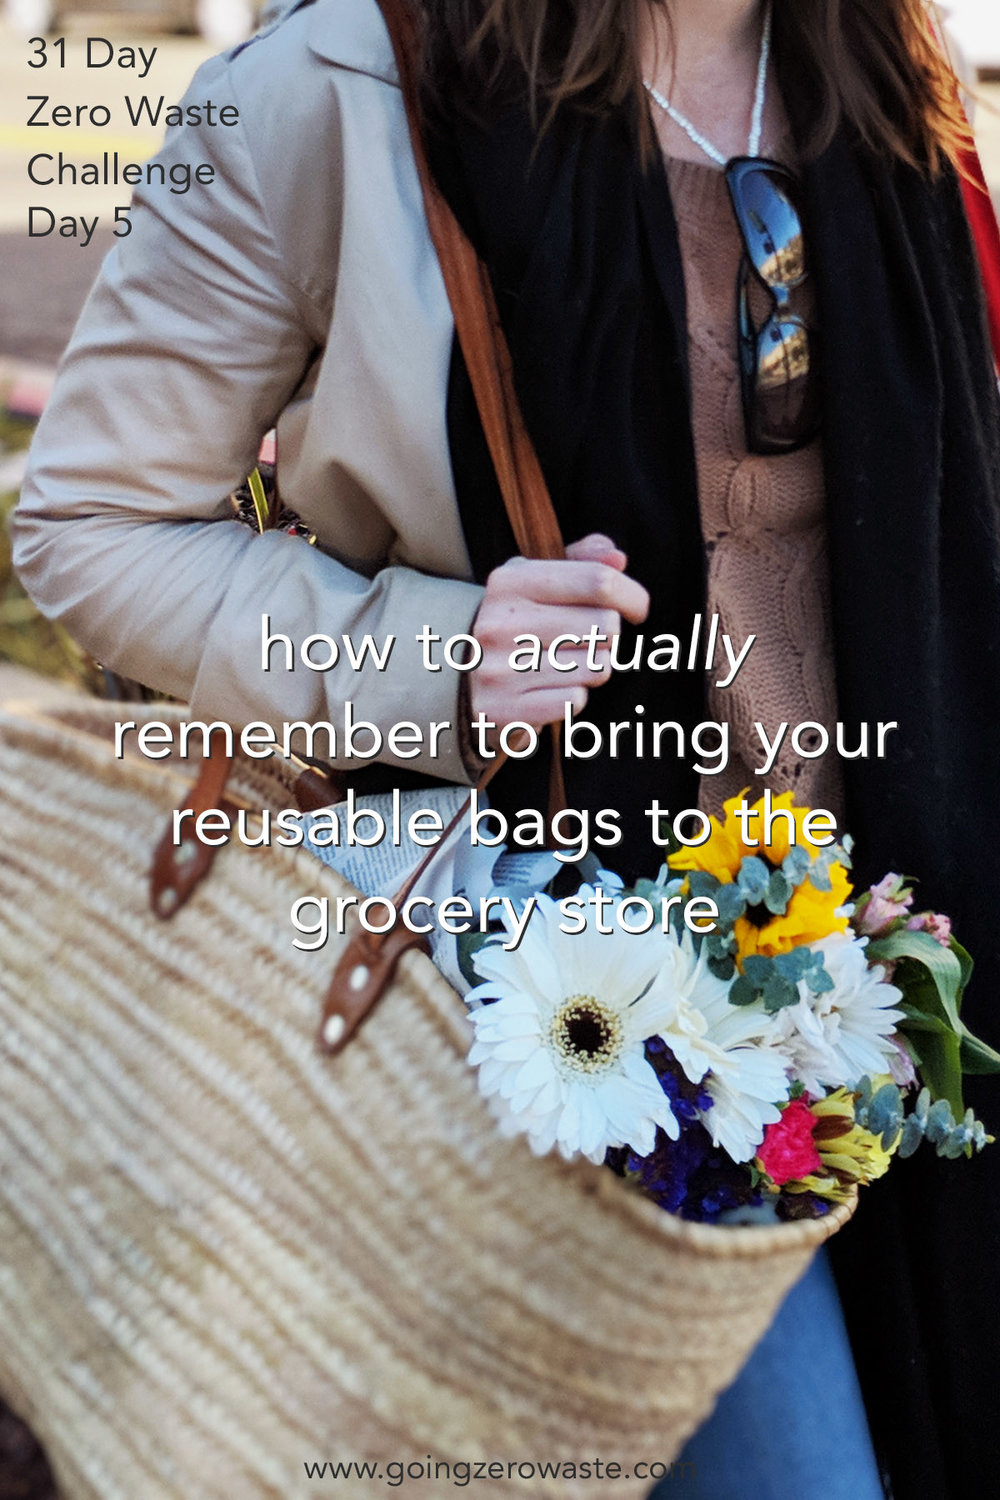 How to actually remember to bring your bags to the grocery store! day five of the zero waste challenge from www.goingzerowaste.com #ecofriendly #gogreen #zerowastechallenge #reusablebags #zerowaste